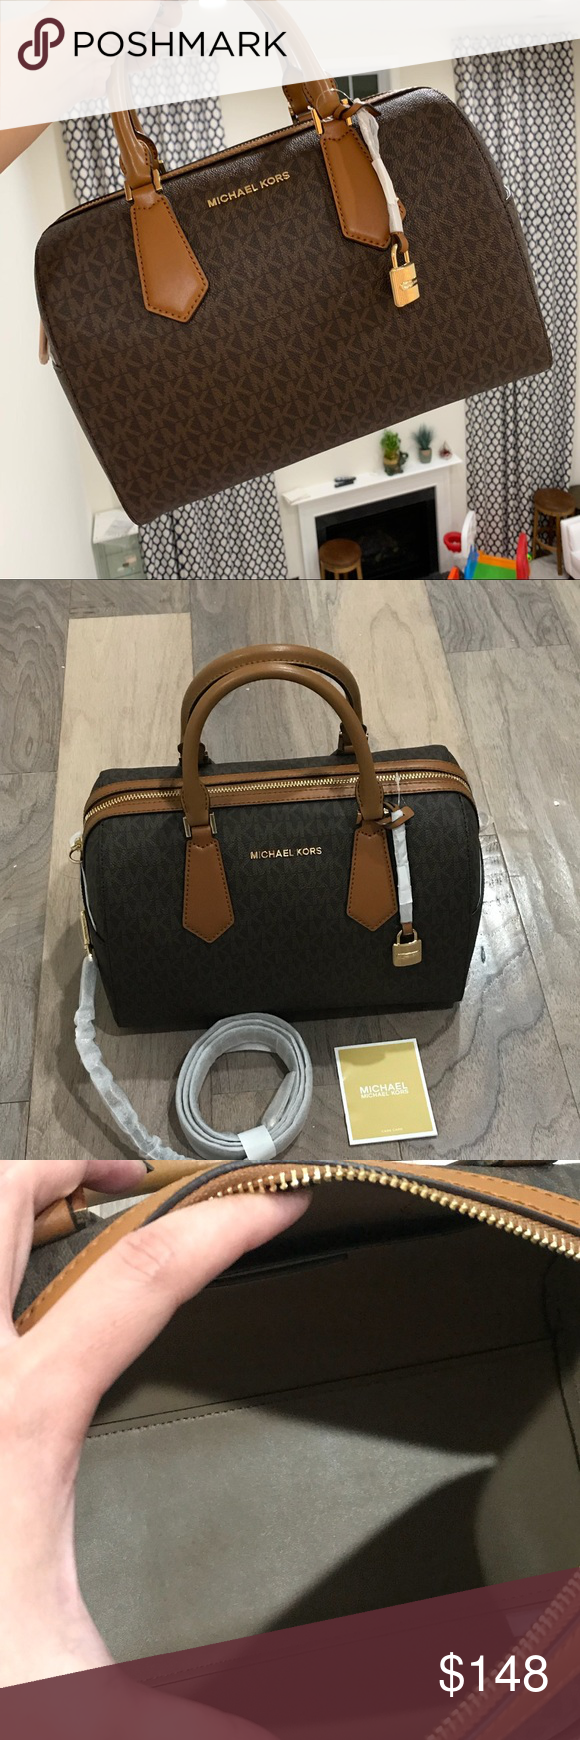 b0eac1041d8b Michael Kors Hayes Duffel Satchel Bag Price is Firm 100% Authentic MK  Michael Kors